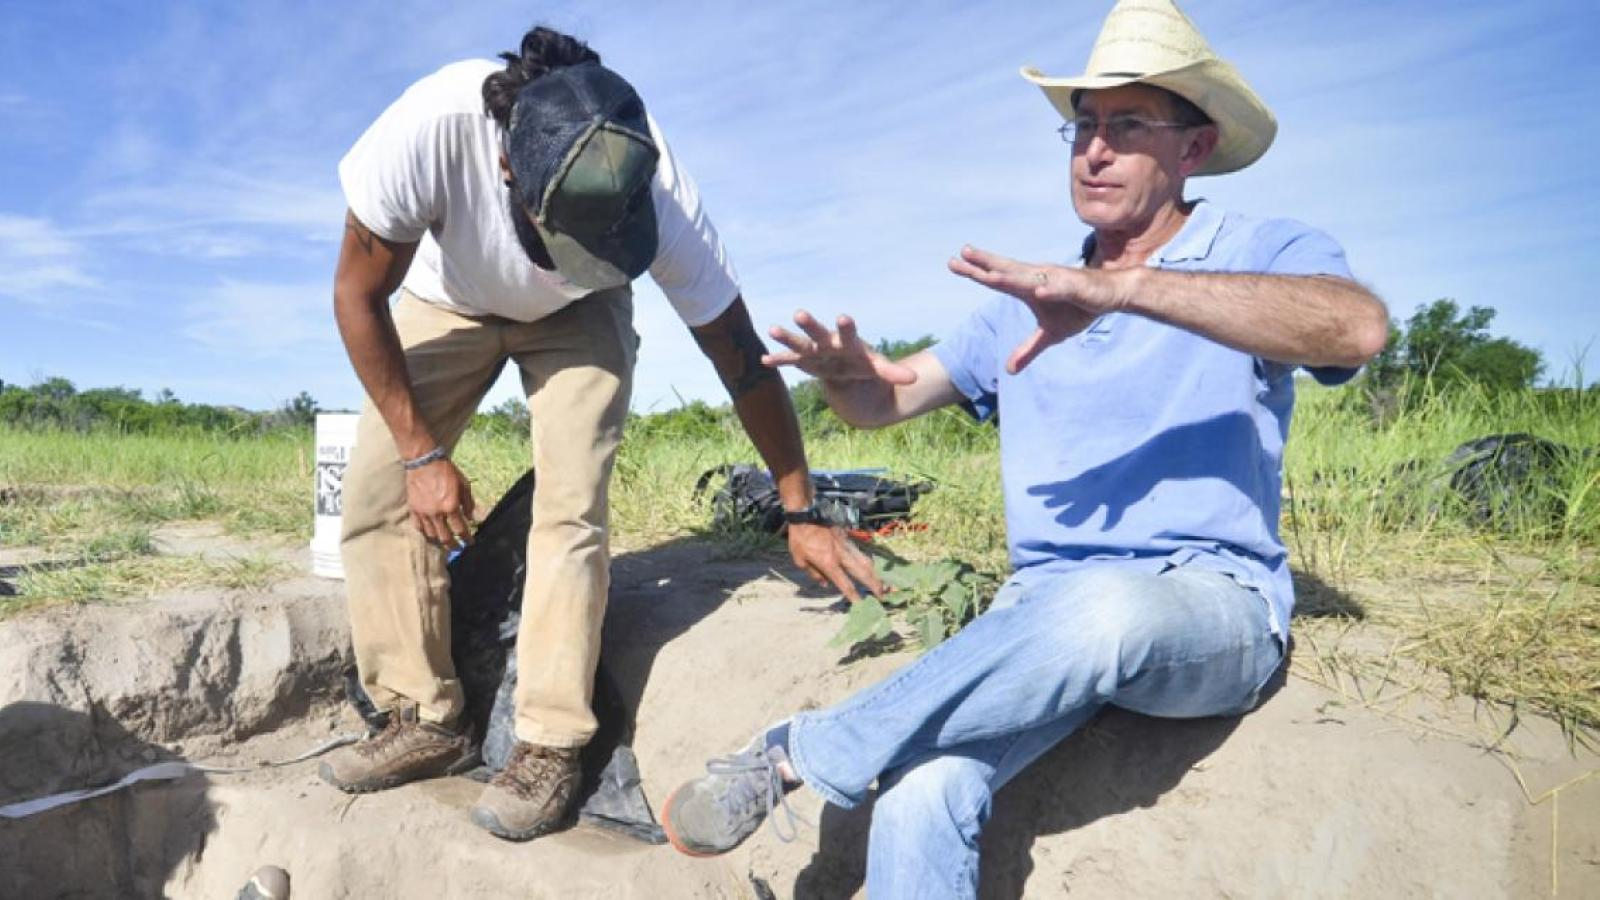 An anthropology professor and student take a break at a dig site.